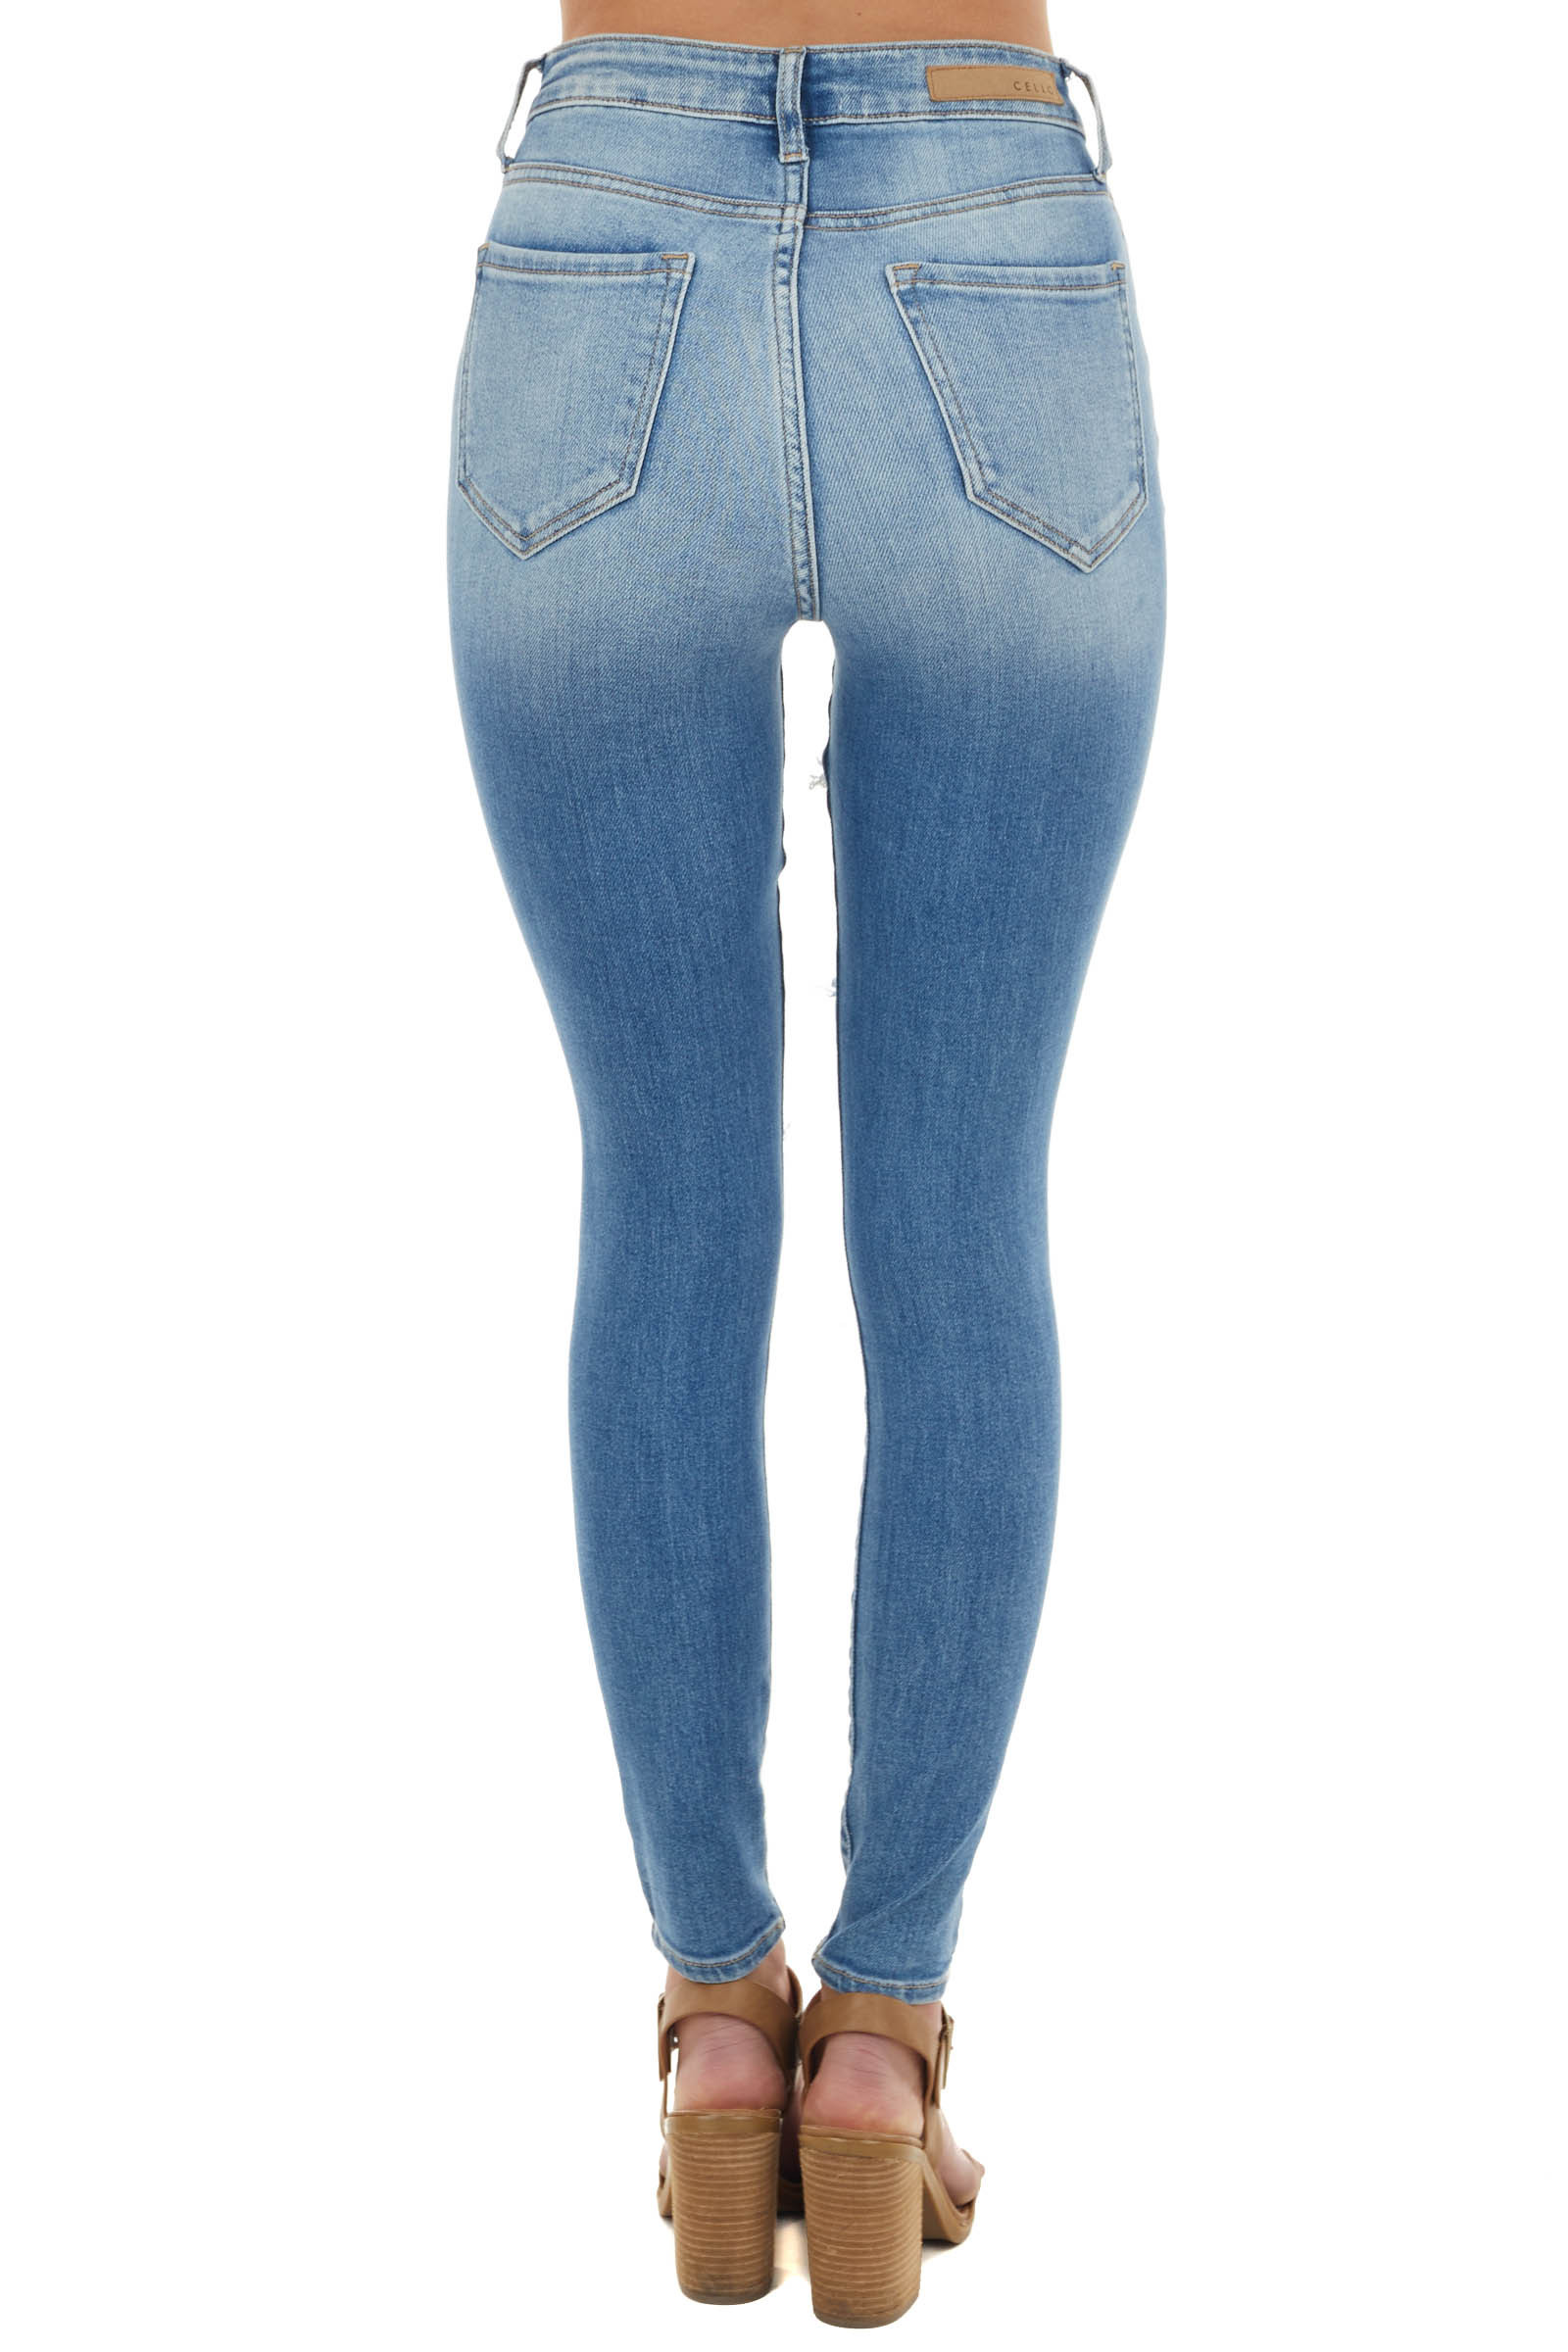 Medium Wash High Rise Skinny Jeans with Heavy Distressing